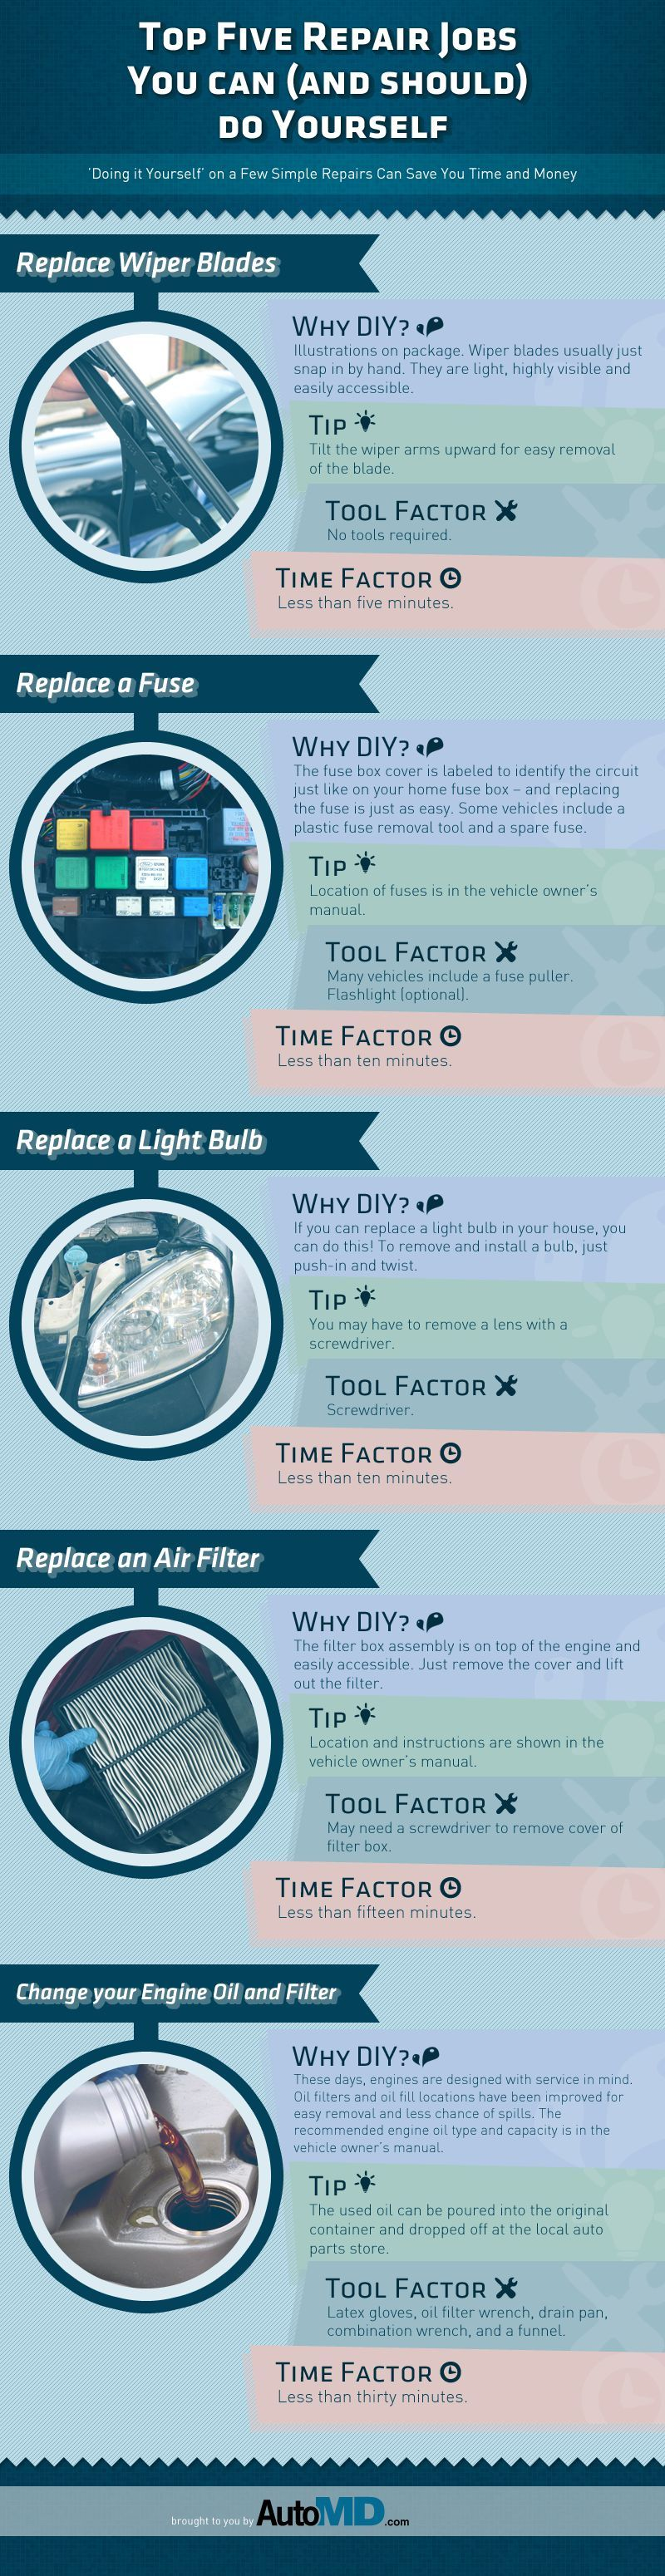 Pin by Marty Marti on Cool Car Stuff Car care tips, Car